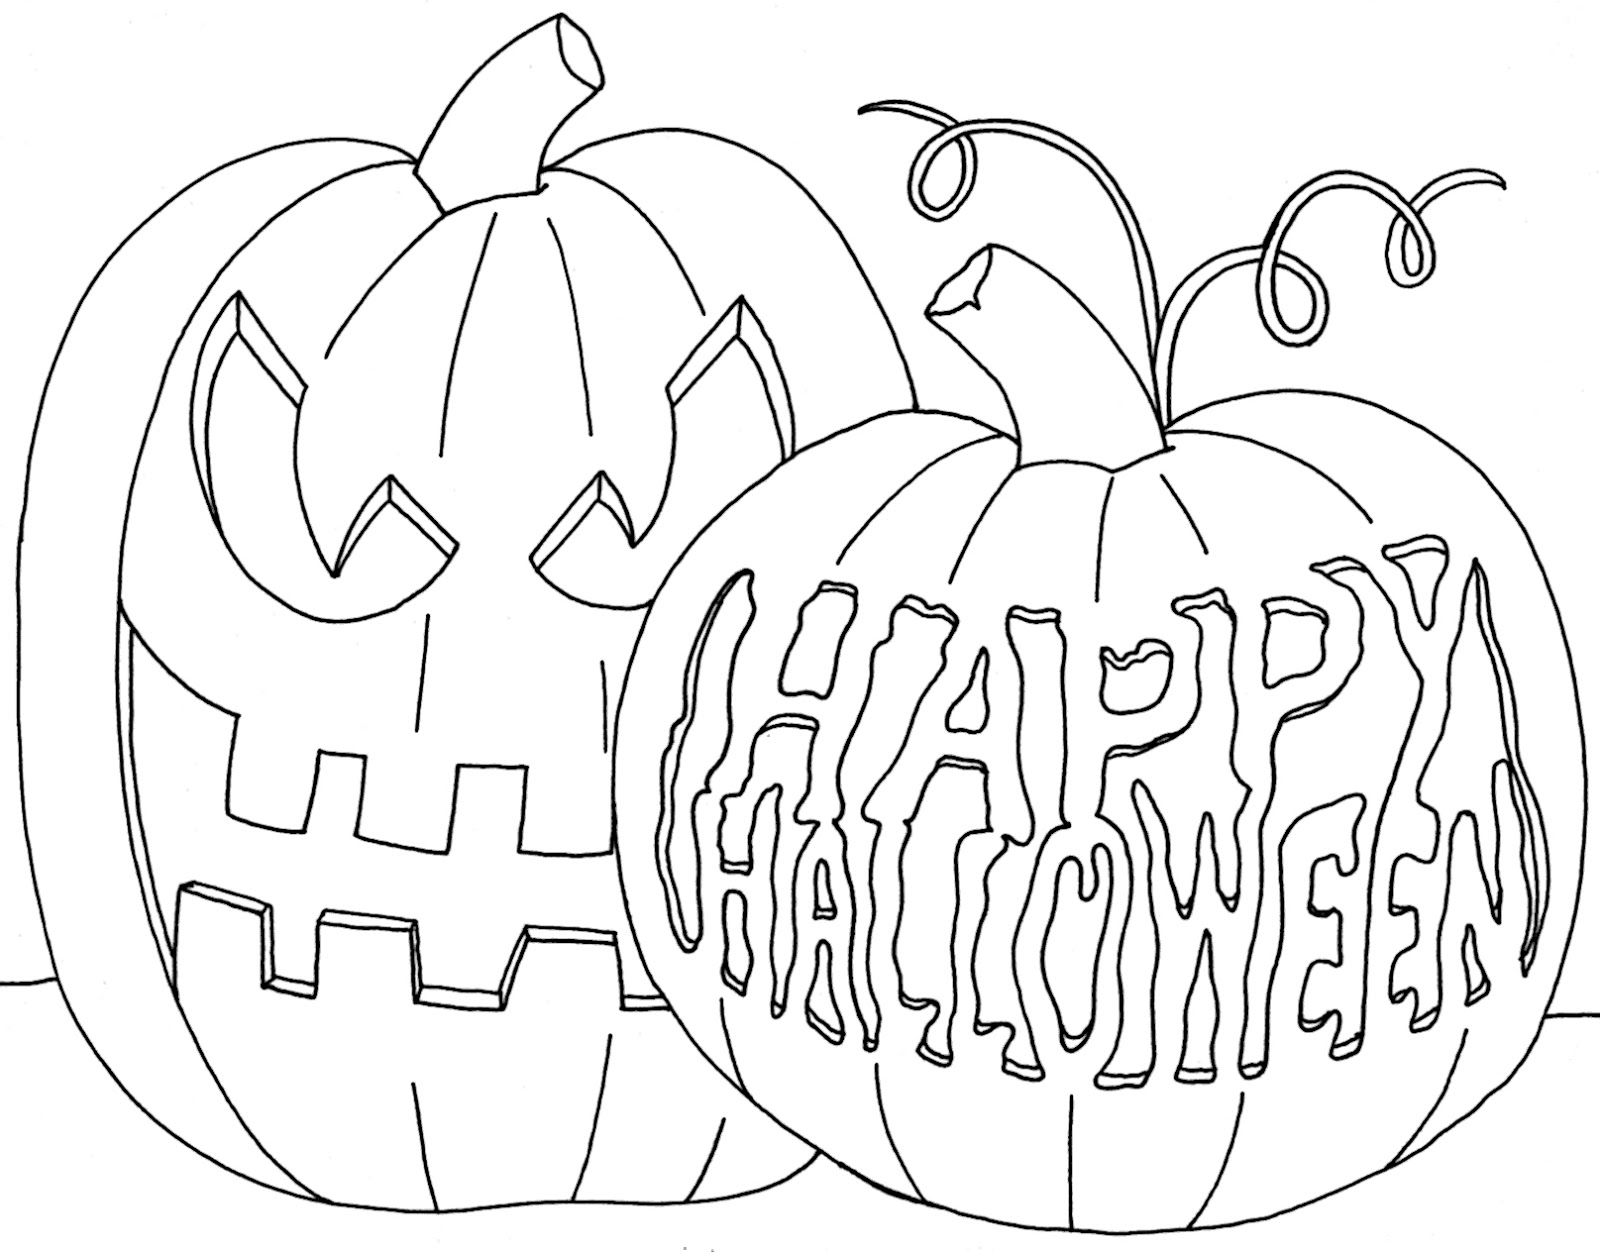 coloring halloween drawings yucca flats nm wenchkin39s coloring pages jack o lanterns coloring halloween drawings